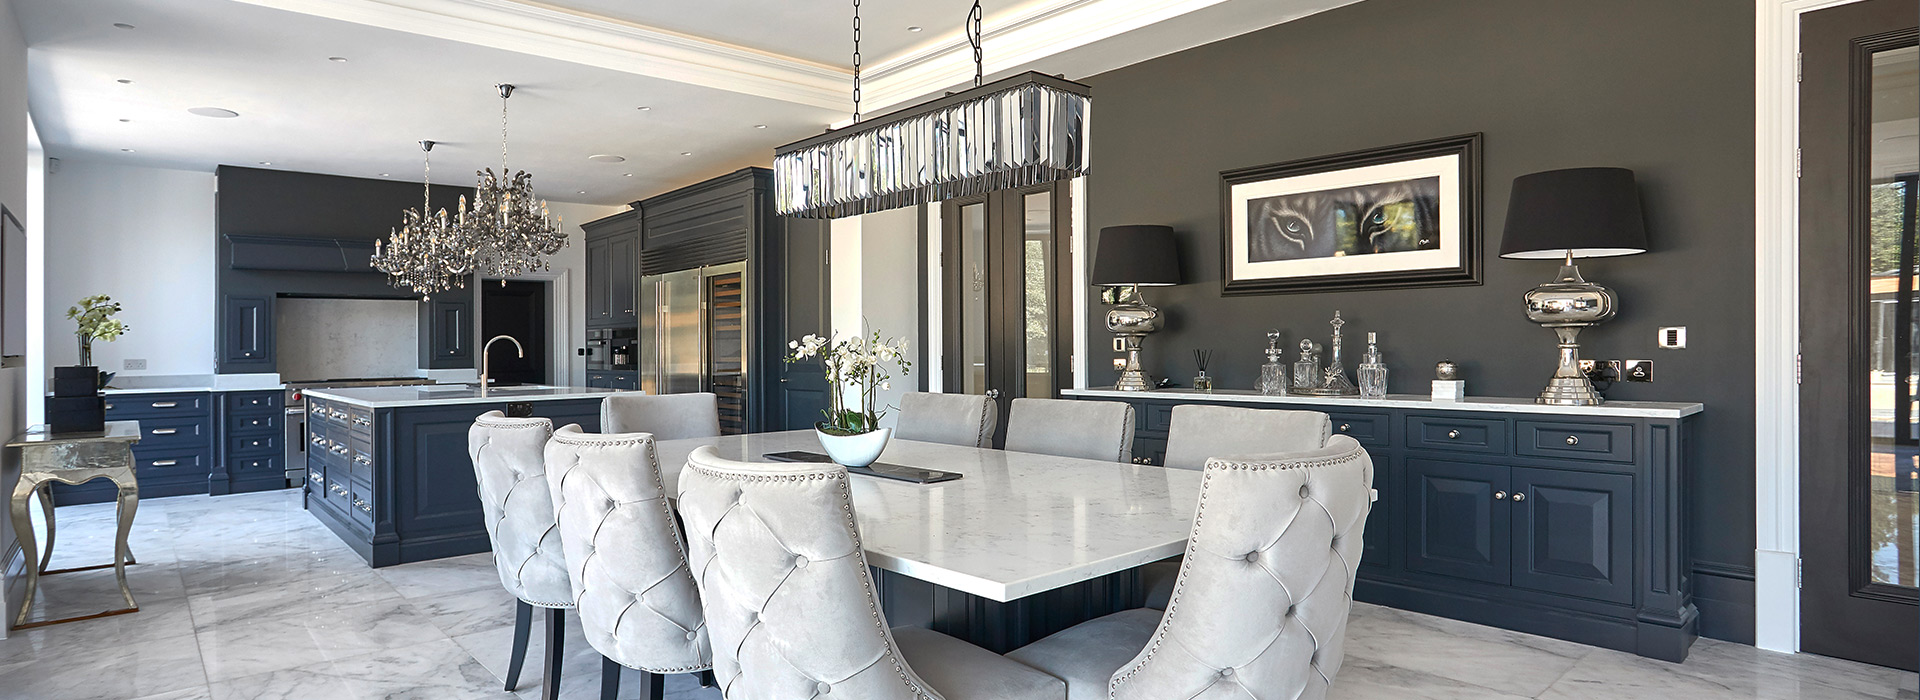 Luxury dining room with suede chairs